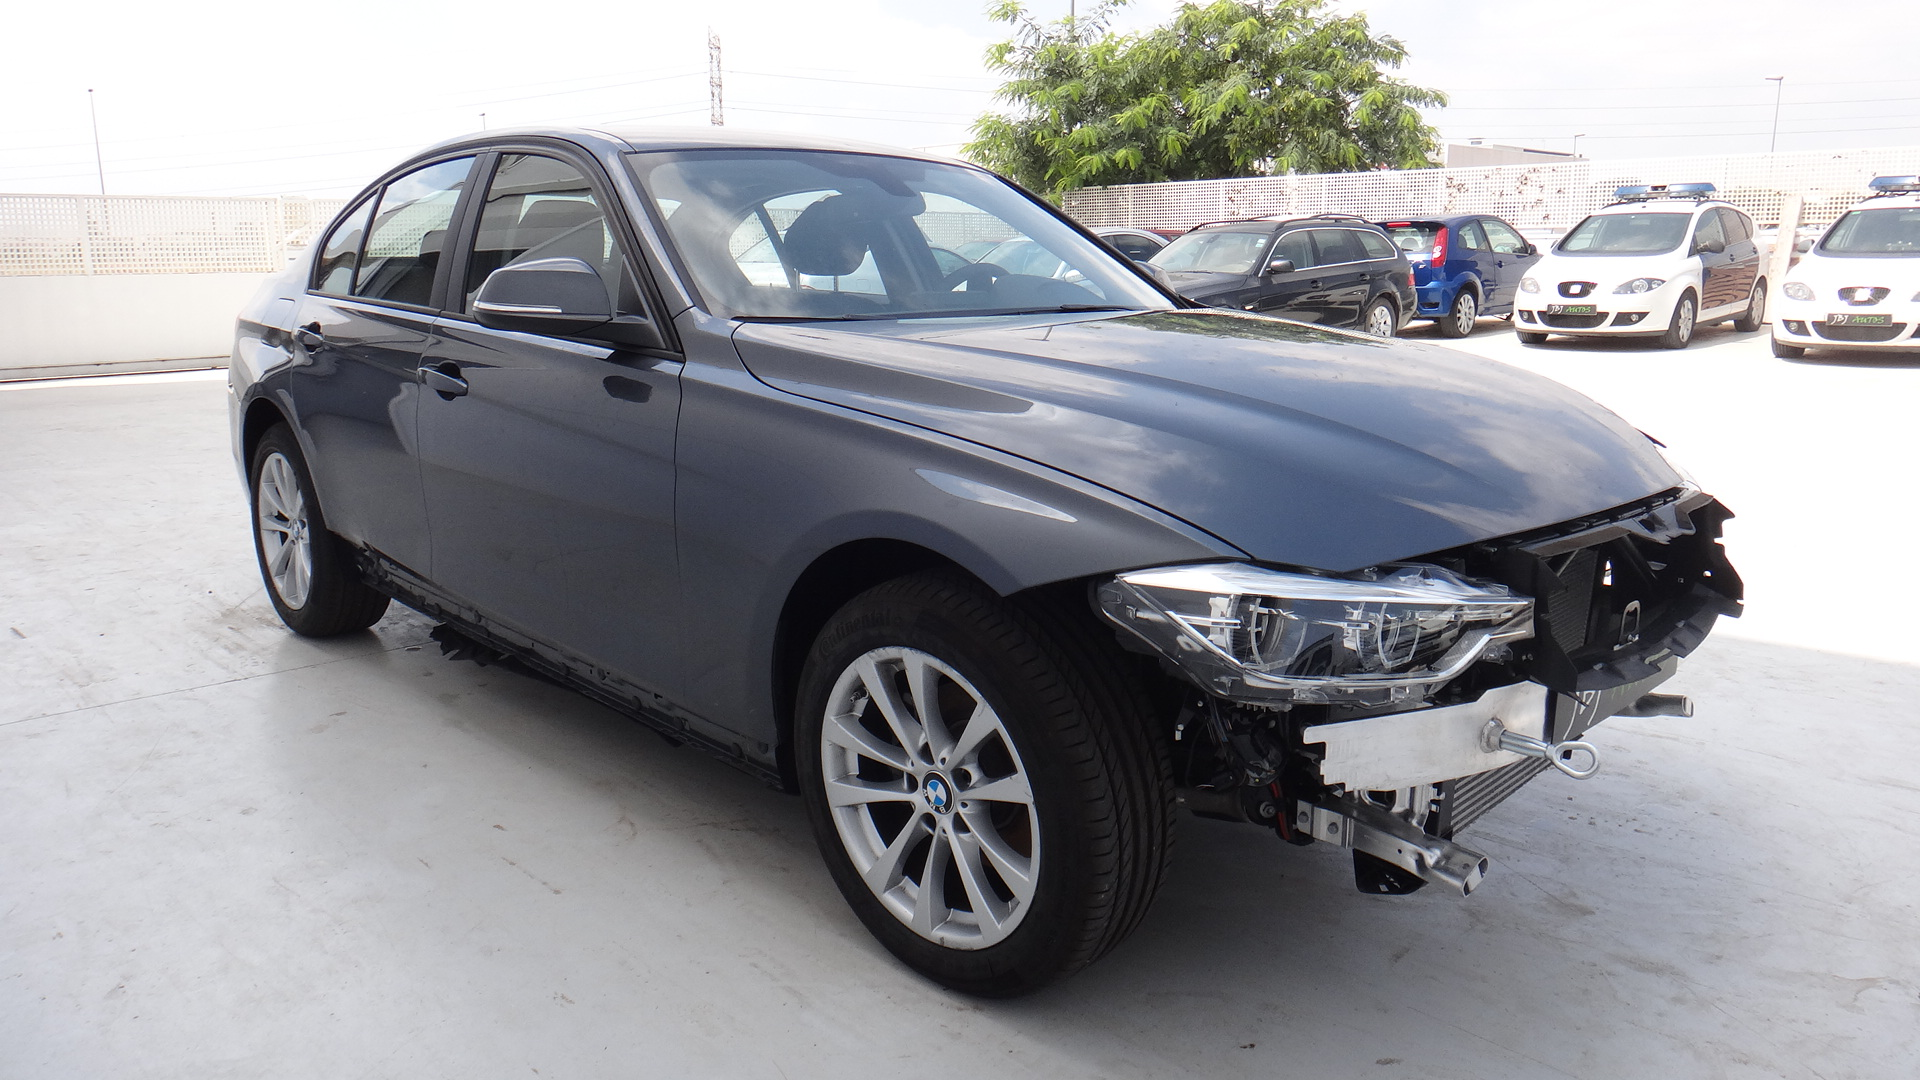 Repairable Cars for Sale Near Me Beautiful Damaged Cars for Sale Reasons why People Prefer to Ing It